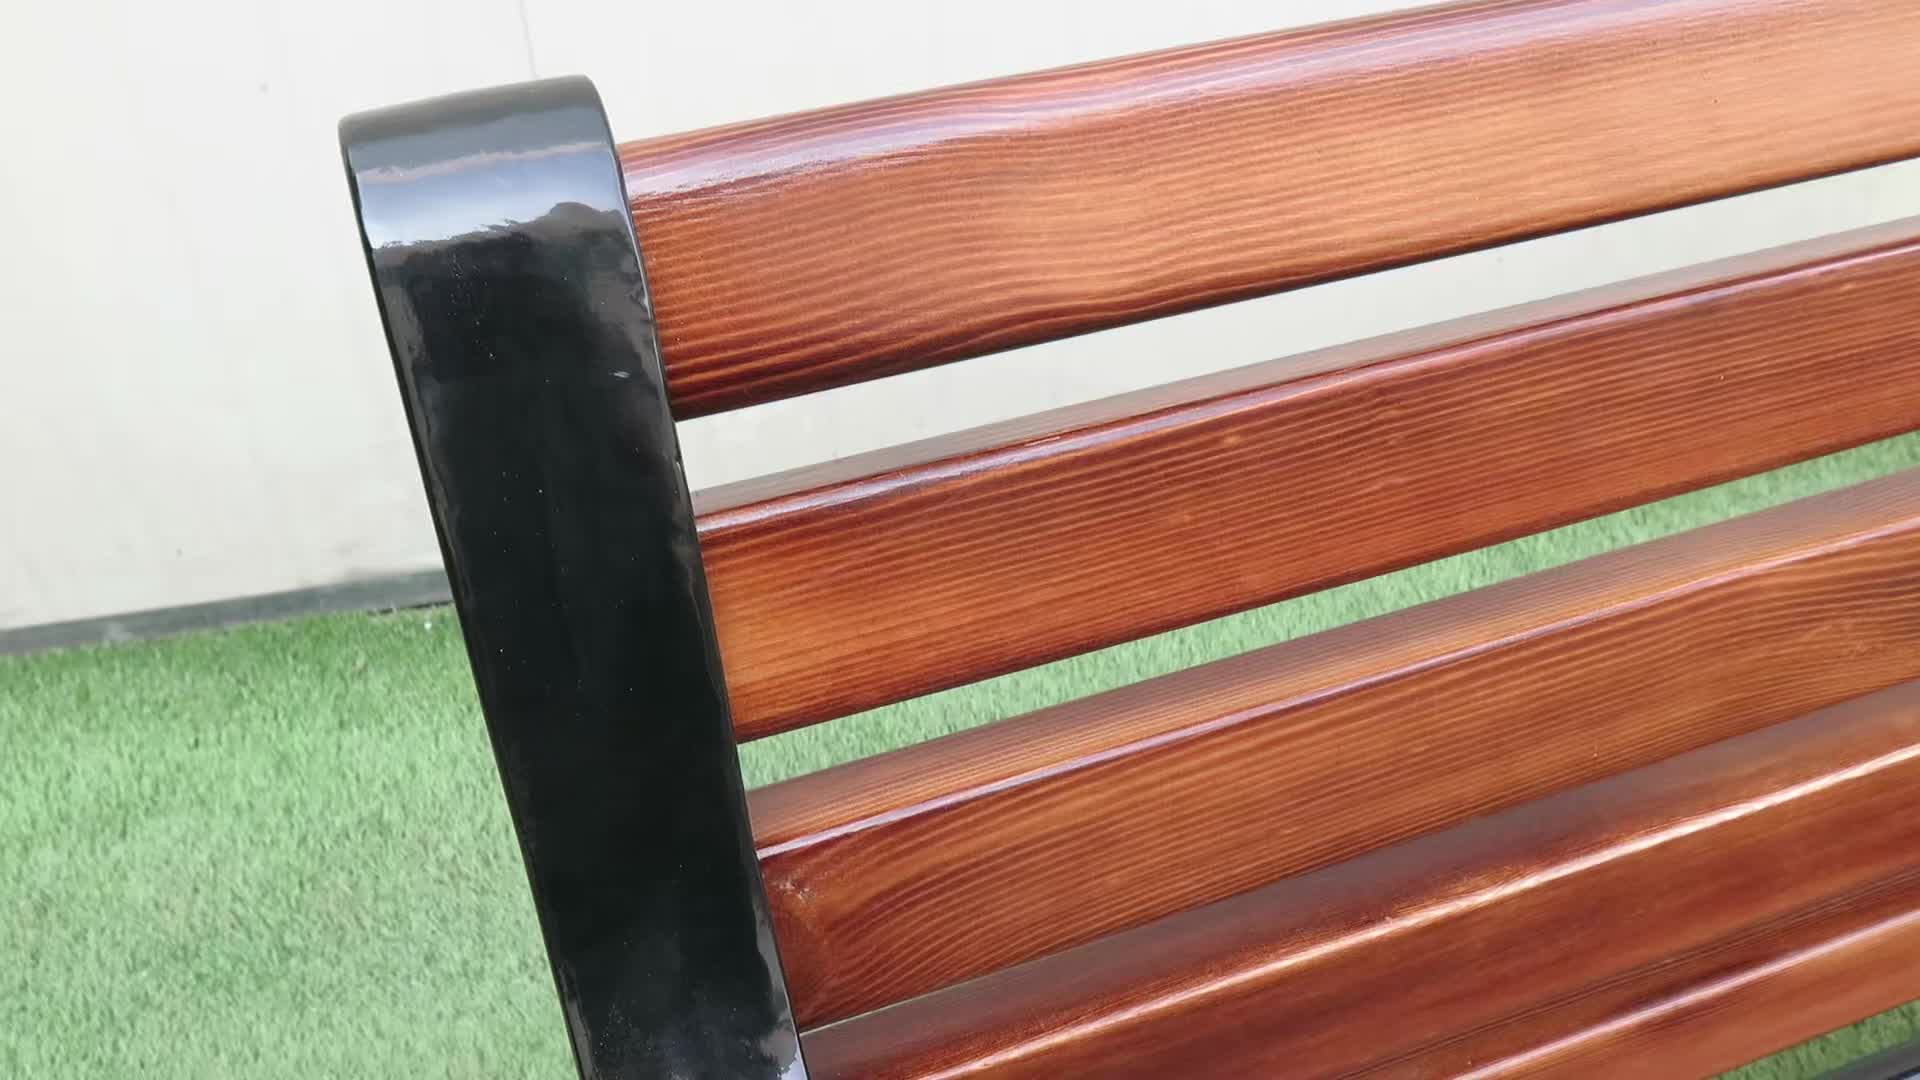 Factory Outlet Wooden Park Bench Outdoor Garden Seating Cast Iron Leg Metal Chair with Backrest